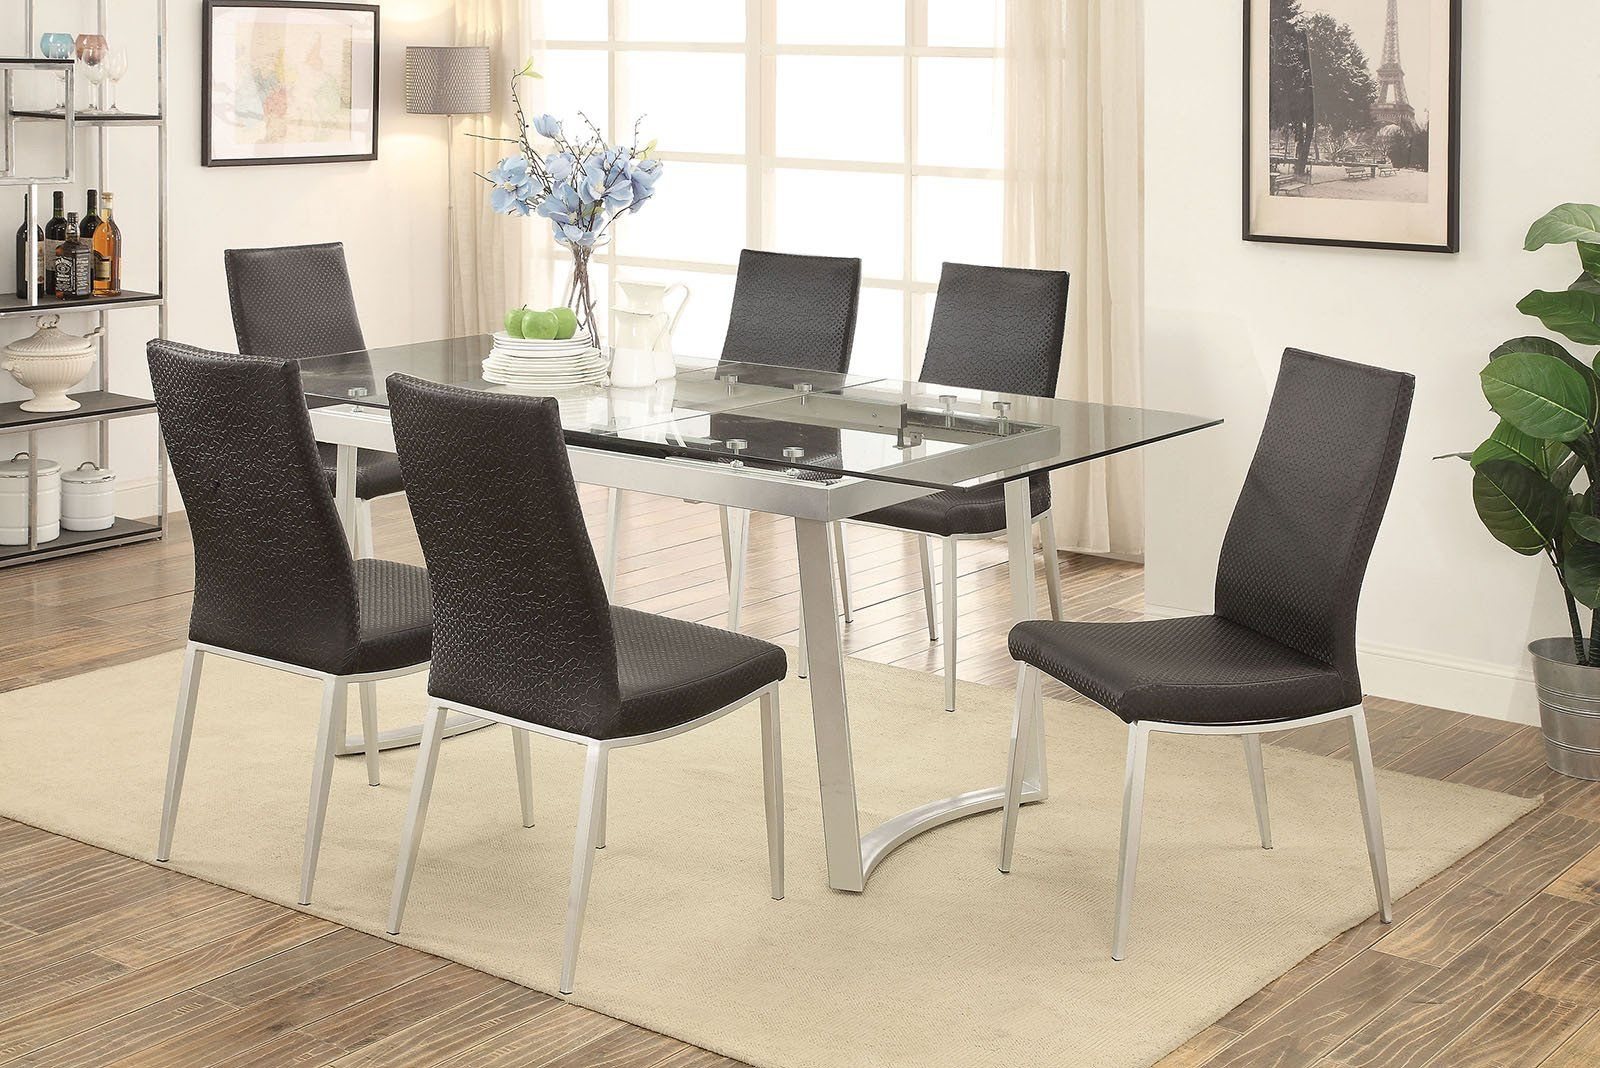 Miriam contemporary dining table set